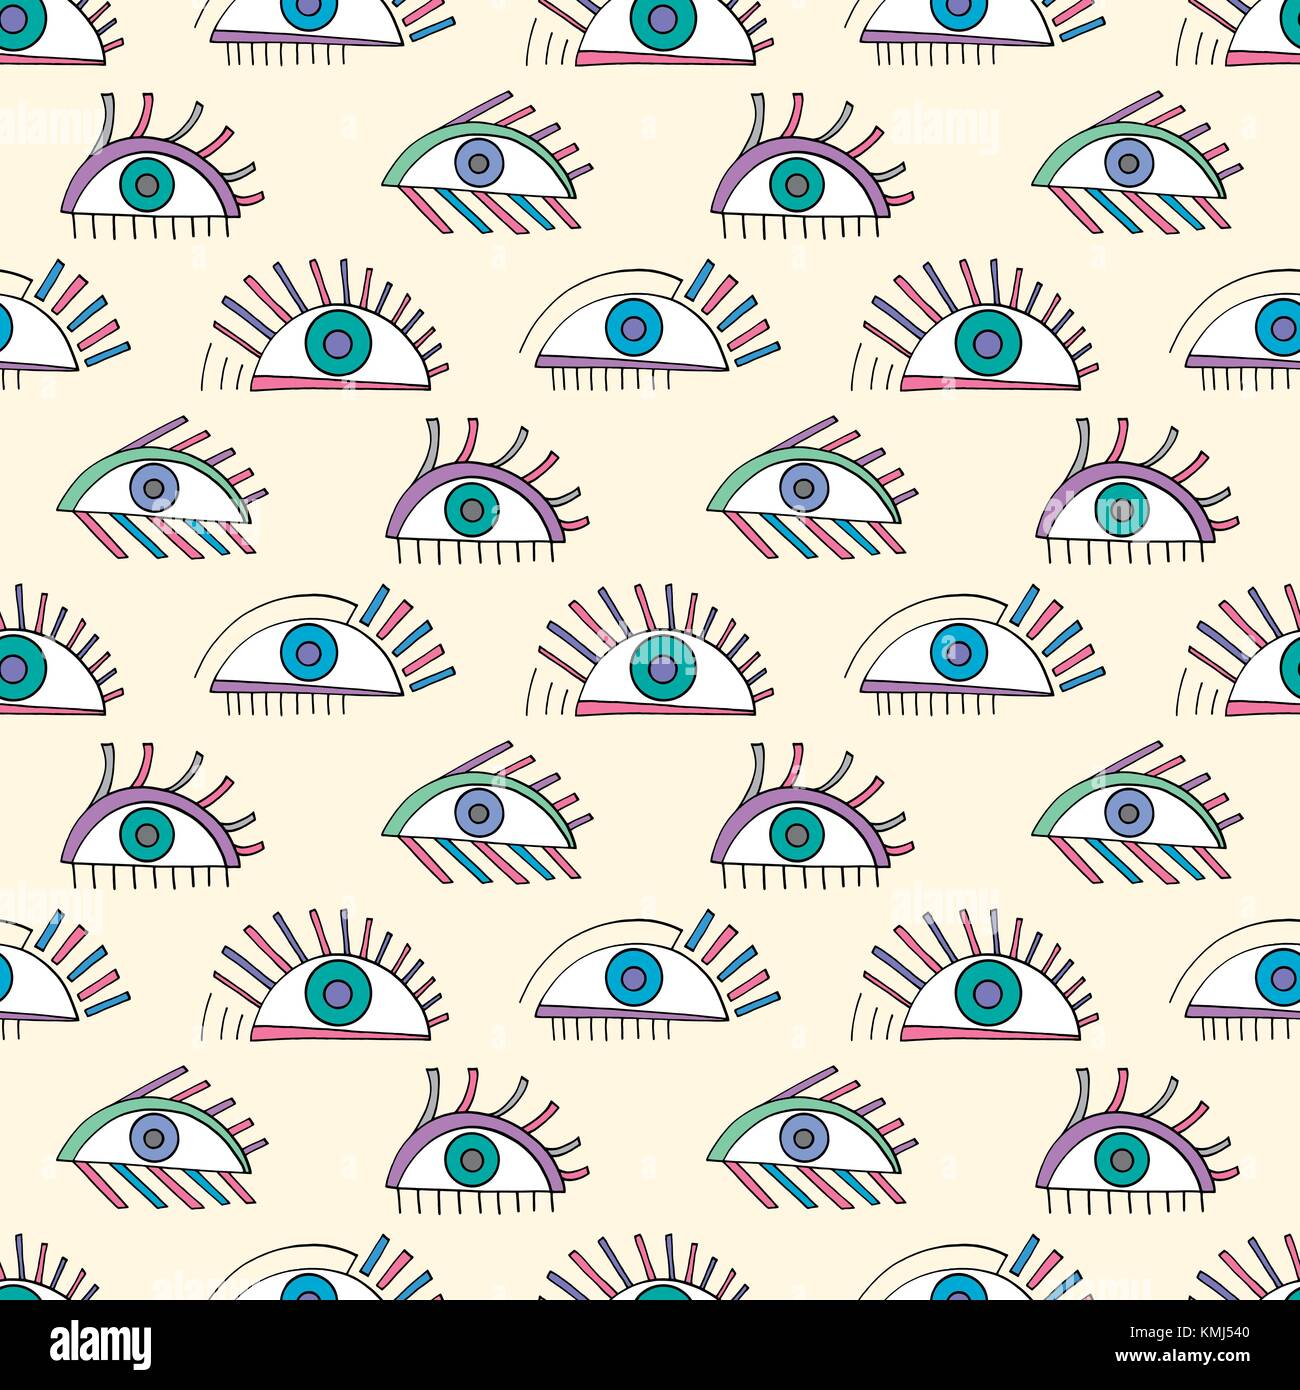 Hand drawn abstract eyes pattern. Colorful sight seamless vector background. Modern stylish texture for wallpaper, - Stock Image